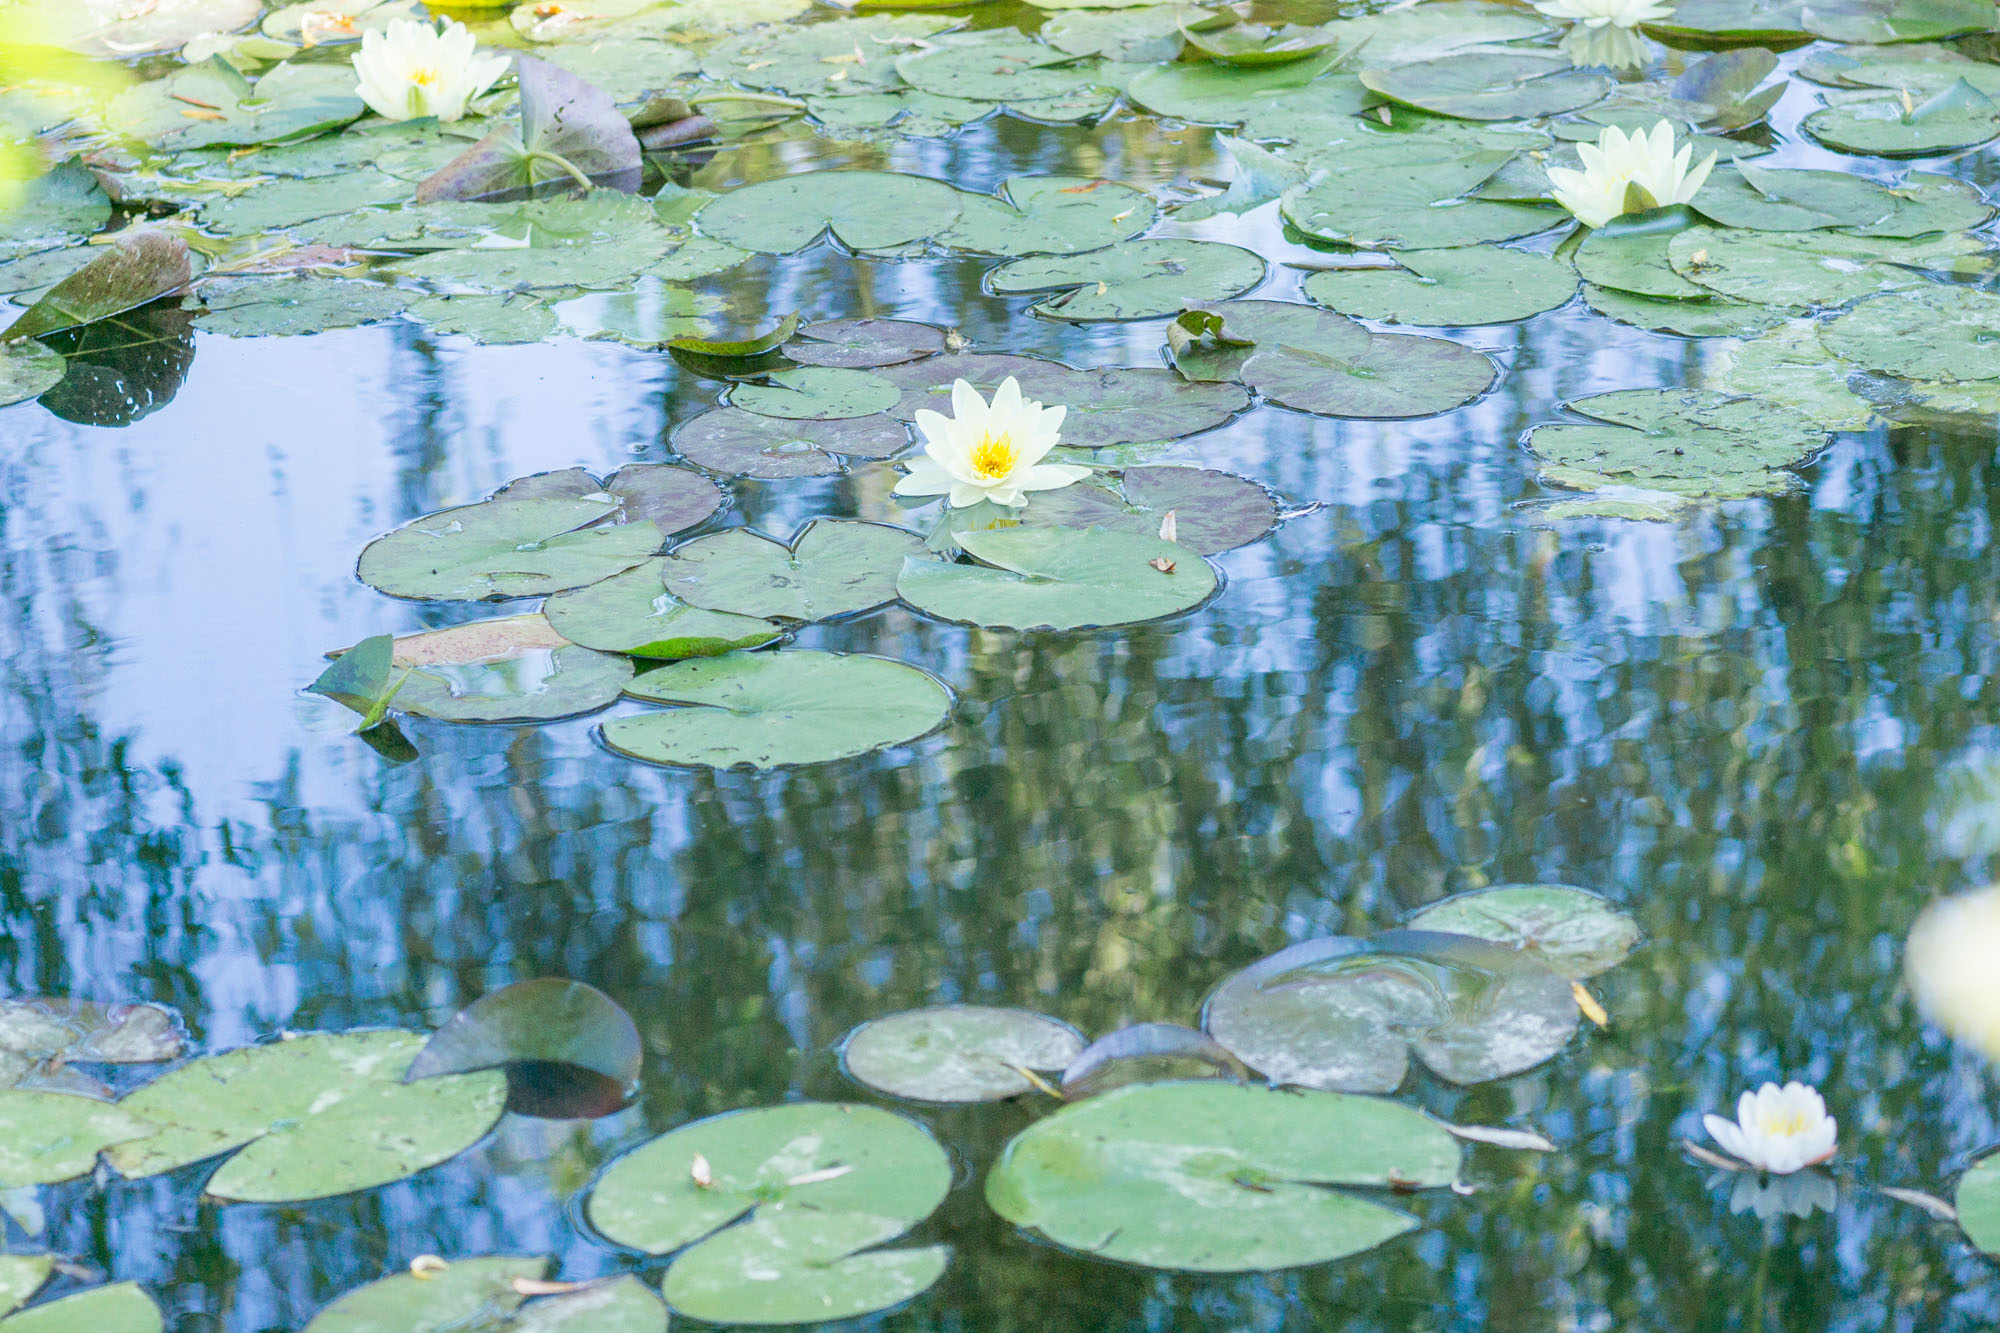 Monet's Garden | Giverny Travel Guide | Experience Claude Monet's magical garden in Giverny, France with this beautiful and handy travel guide.